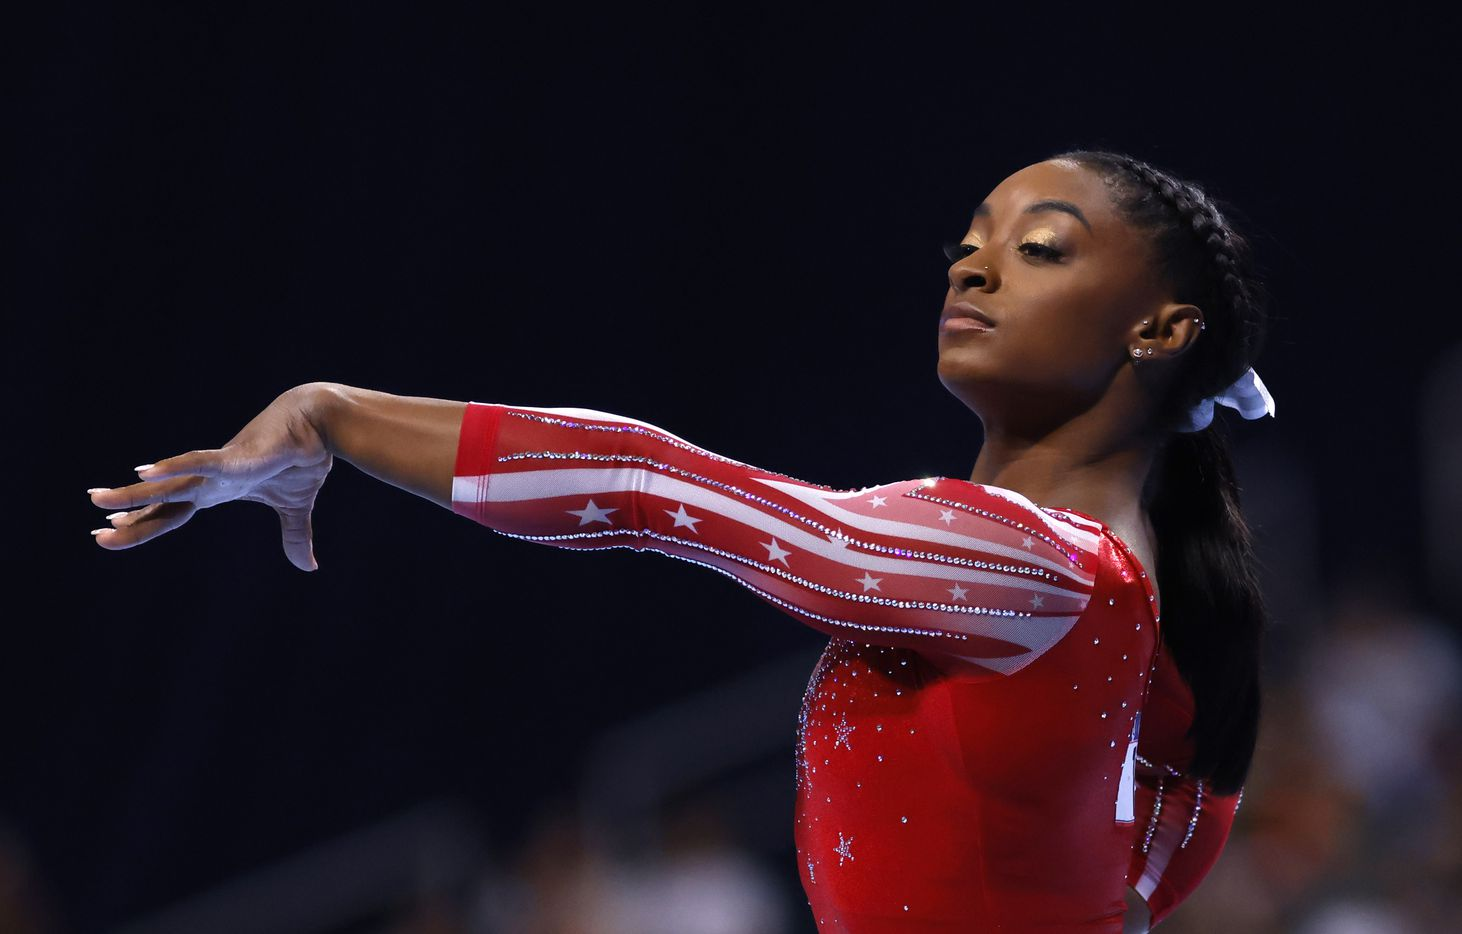 Simone Biles during her floor routine during day 2 of the women's 2021 U.S. Olympic Trials at The Dome at America's Center on Saturday, June 27, 2021 in St Louis, Missouri.(Vernon Bryant/The Dallas Morning News)